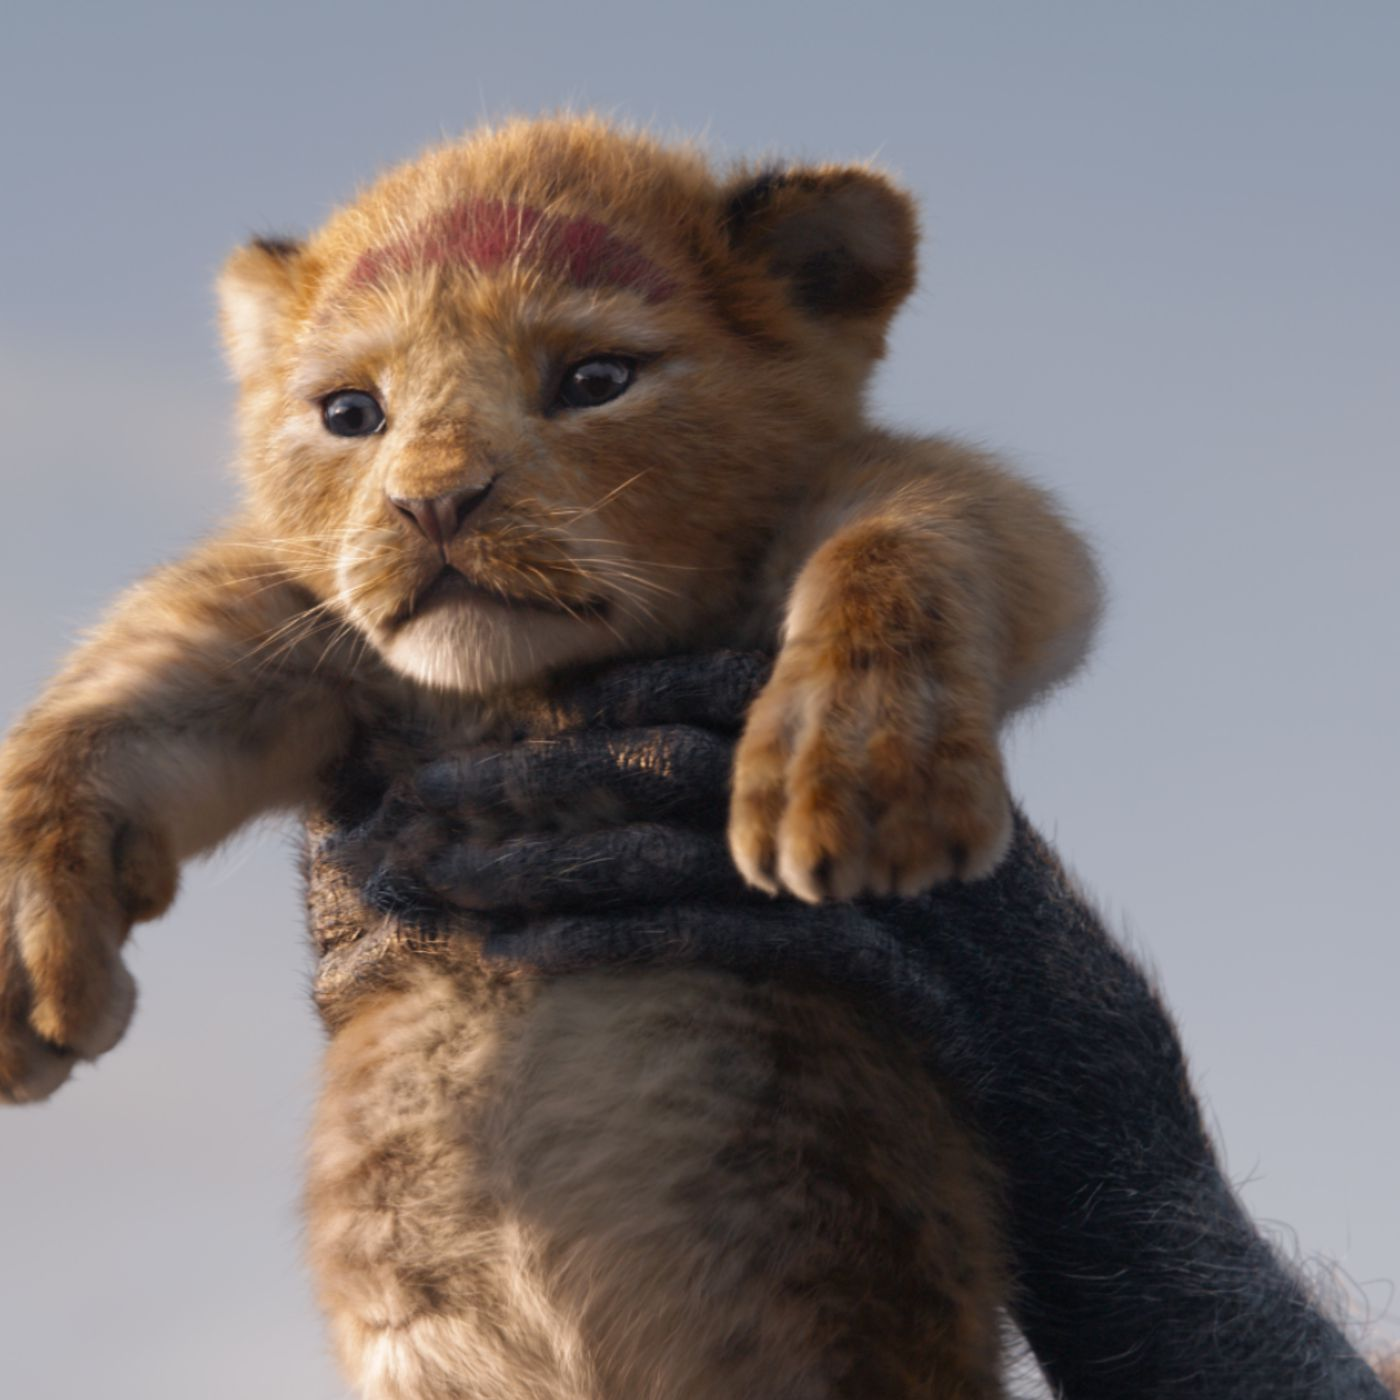 The Lion King review: like the 1994 film, but without the